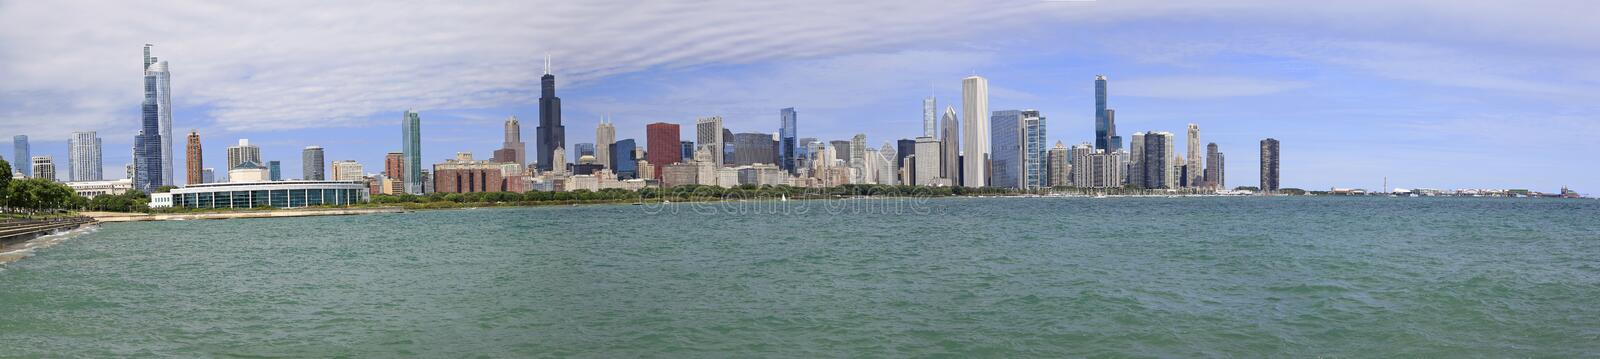 Panoramic view of Chicago skyline with Lake Michigan on the foreground. IL, USA royalty free stock photos